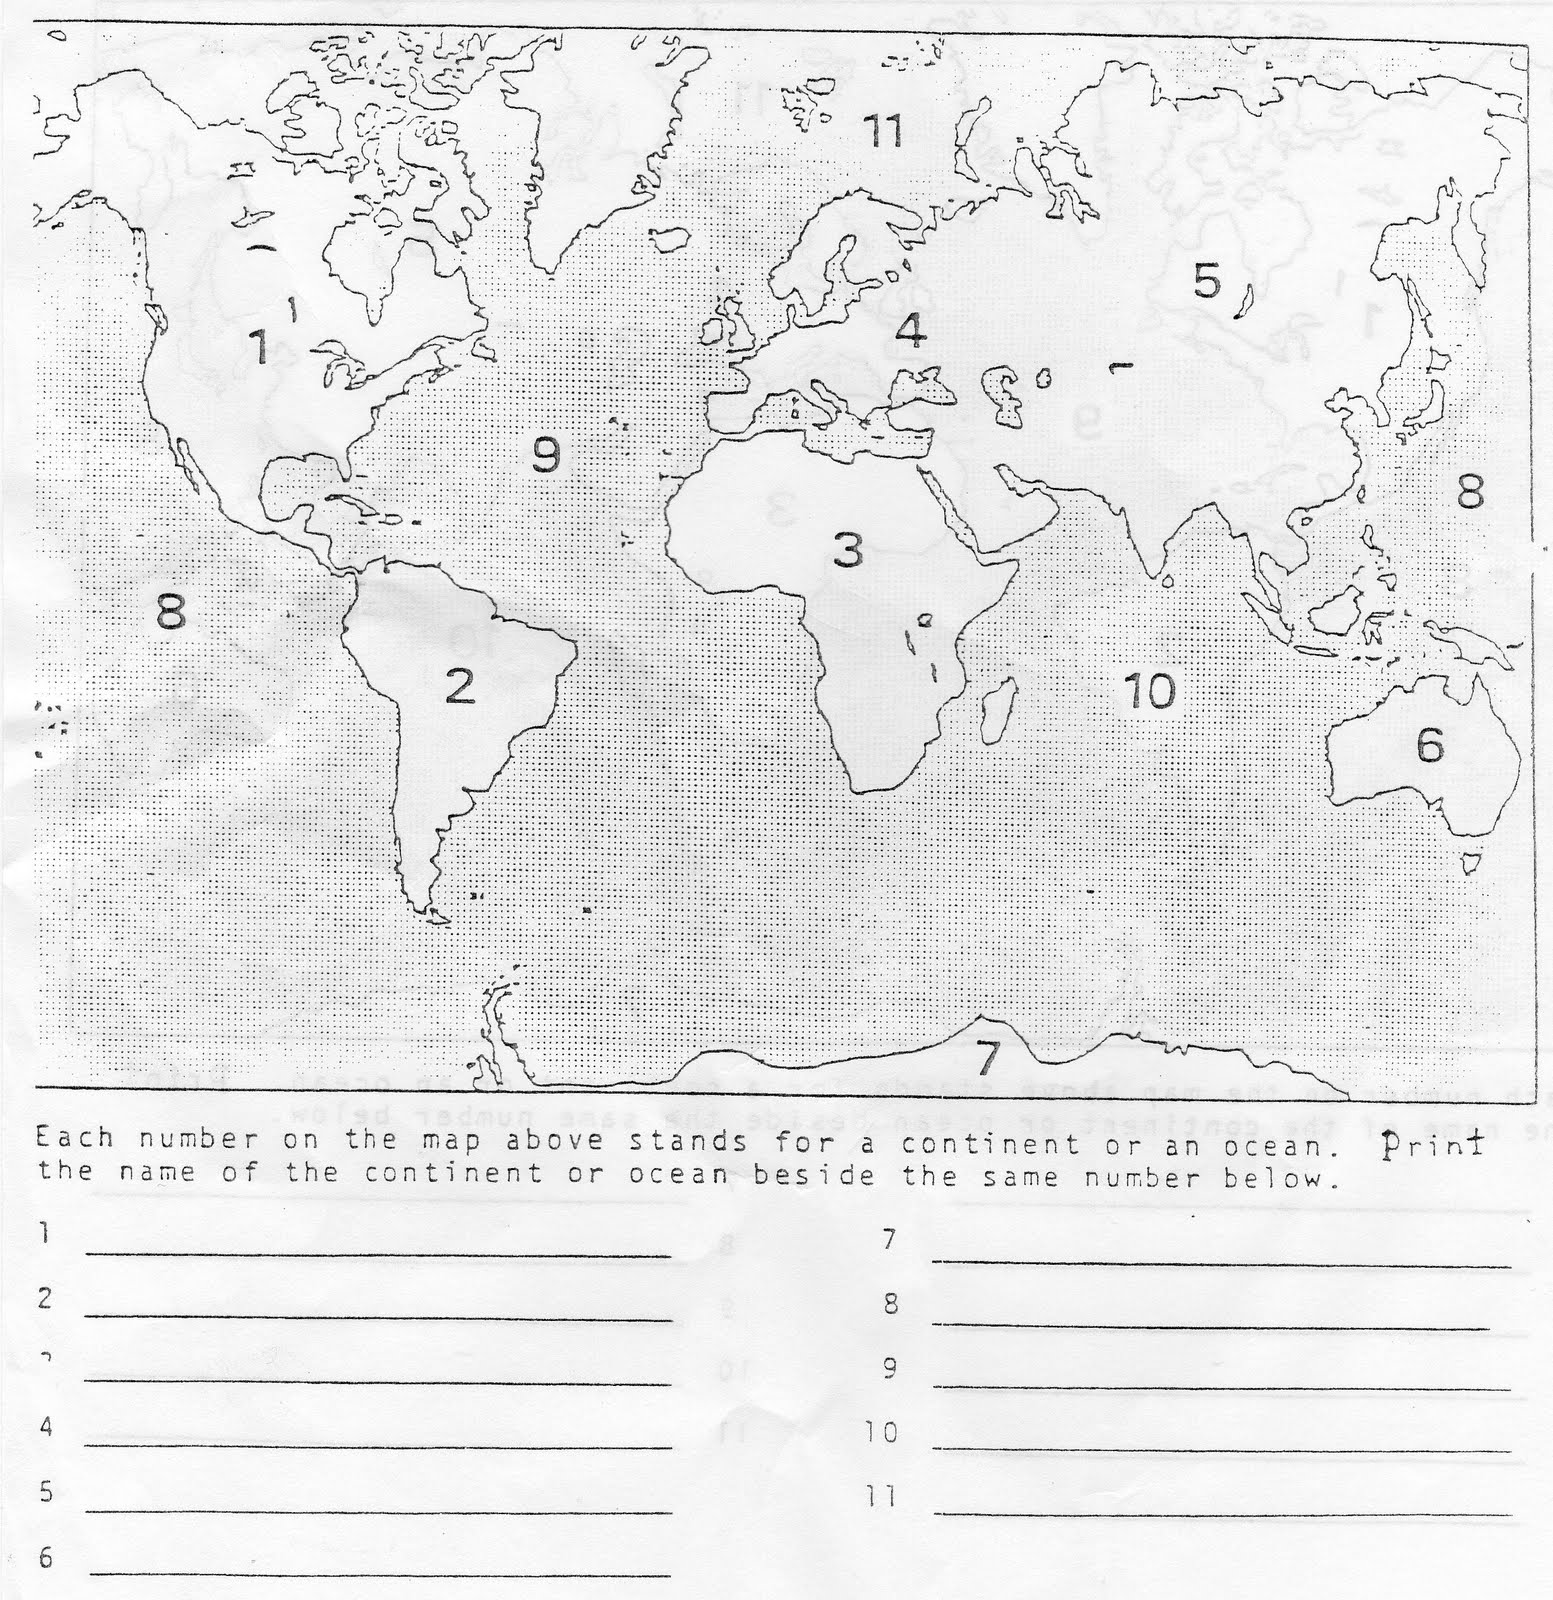 Continents And Oceans Worksheets 5th Grade   Printable Worksheets and  Activities for Teachers [ 1600 x 1553 Pixel ]